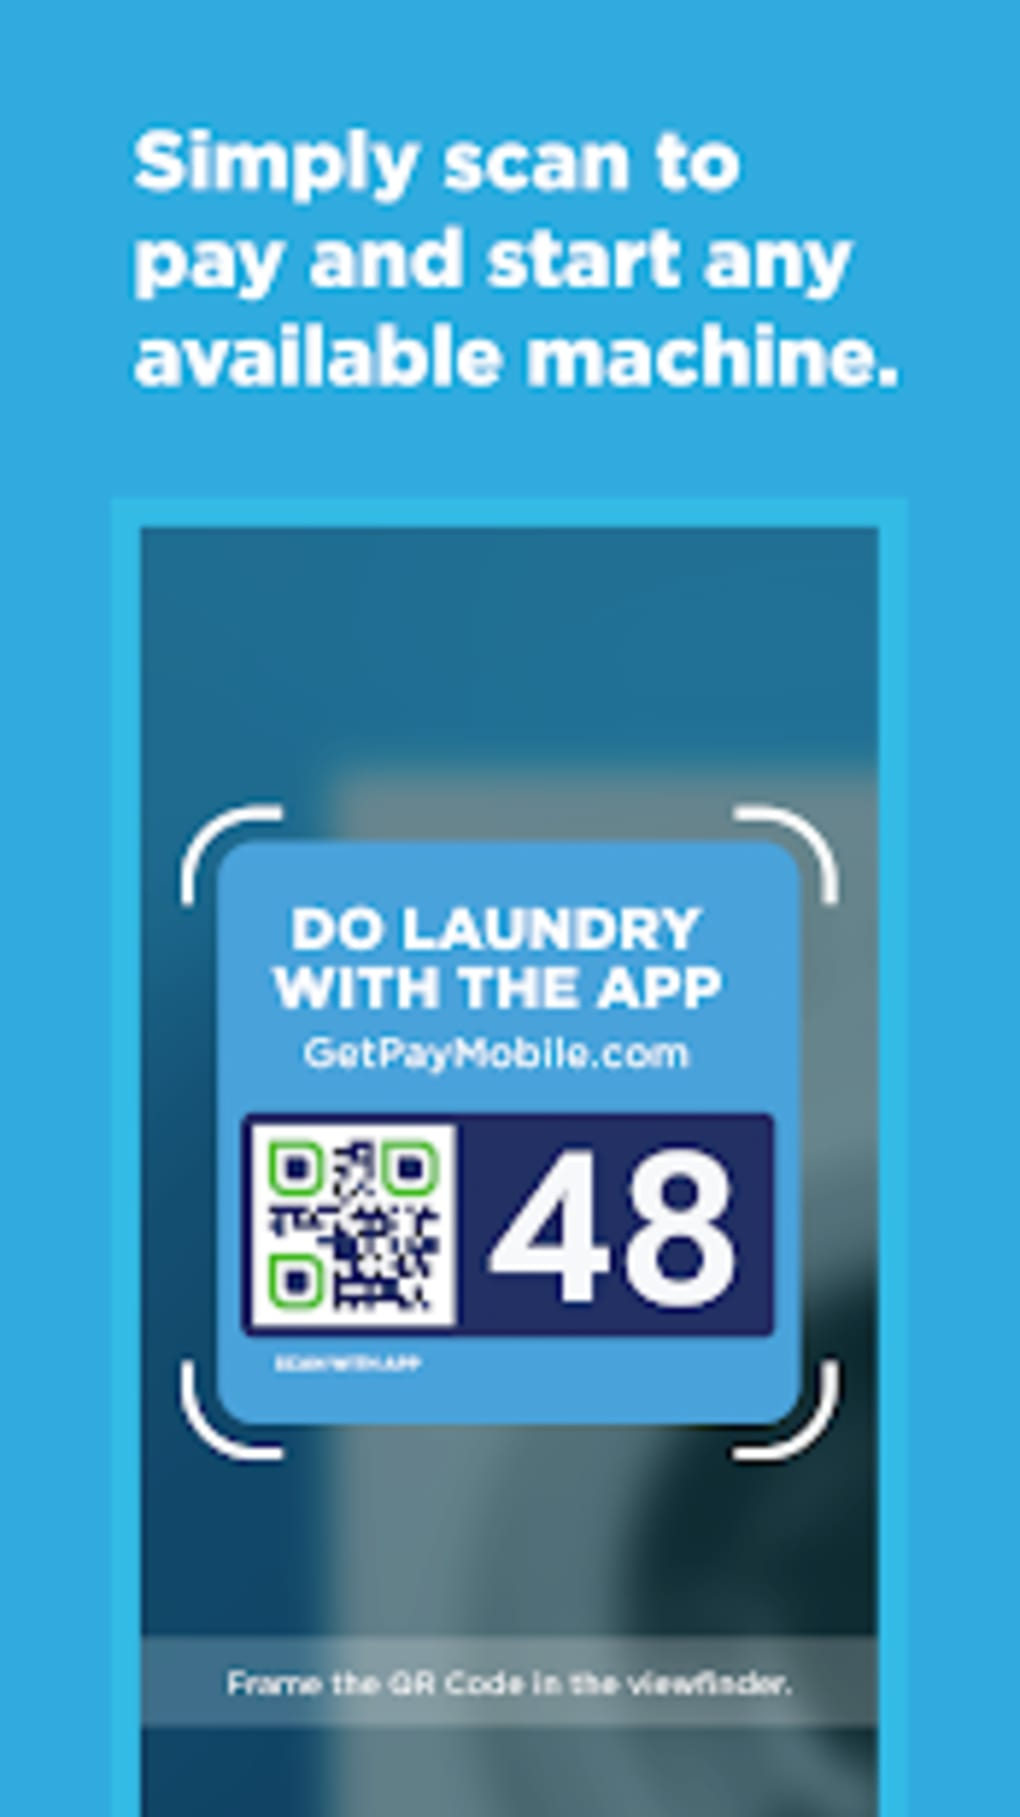 CSCPay Mobile - Coinless Laundry System for Android - Download